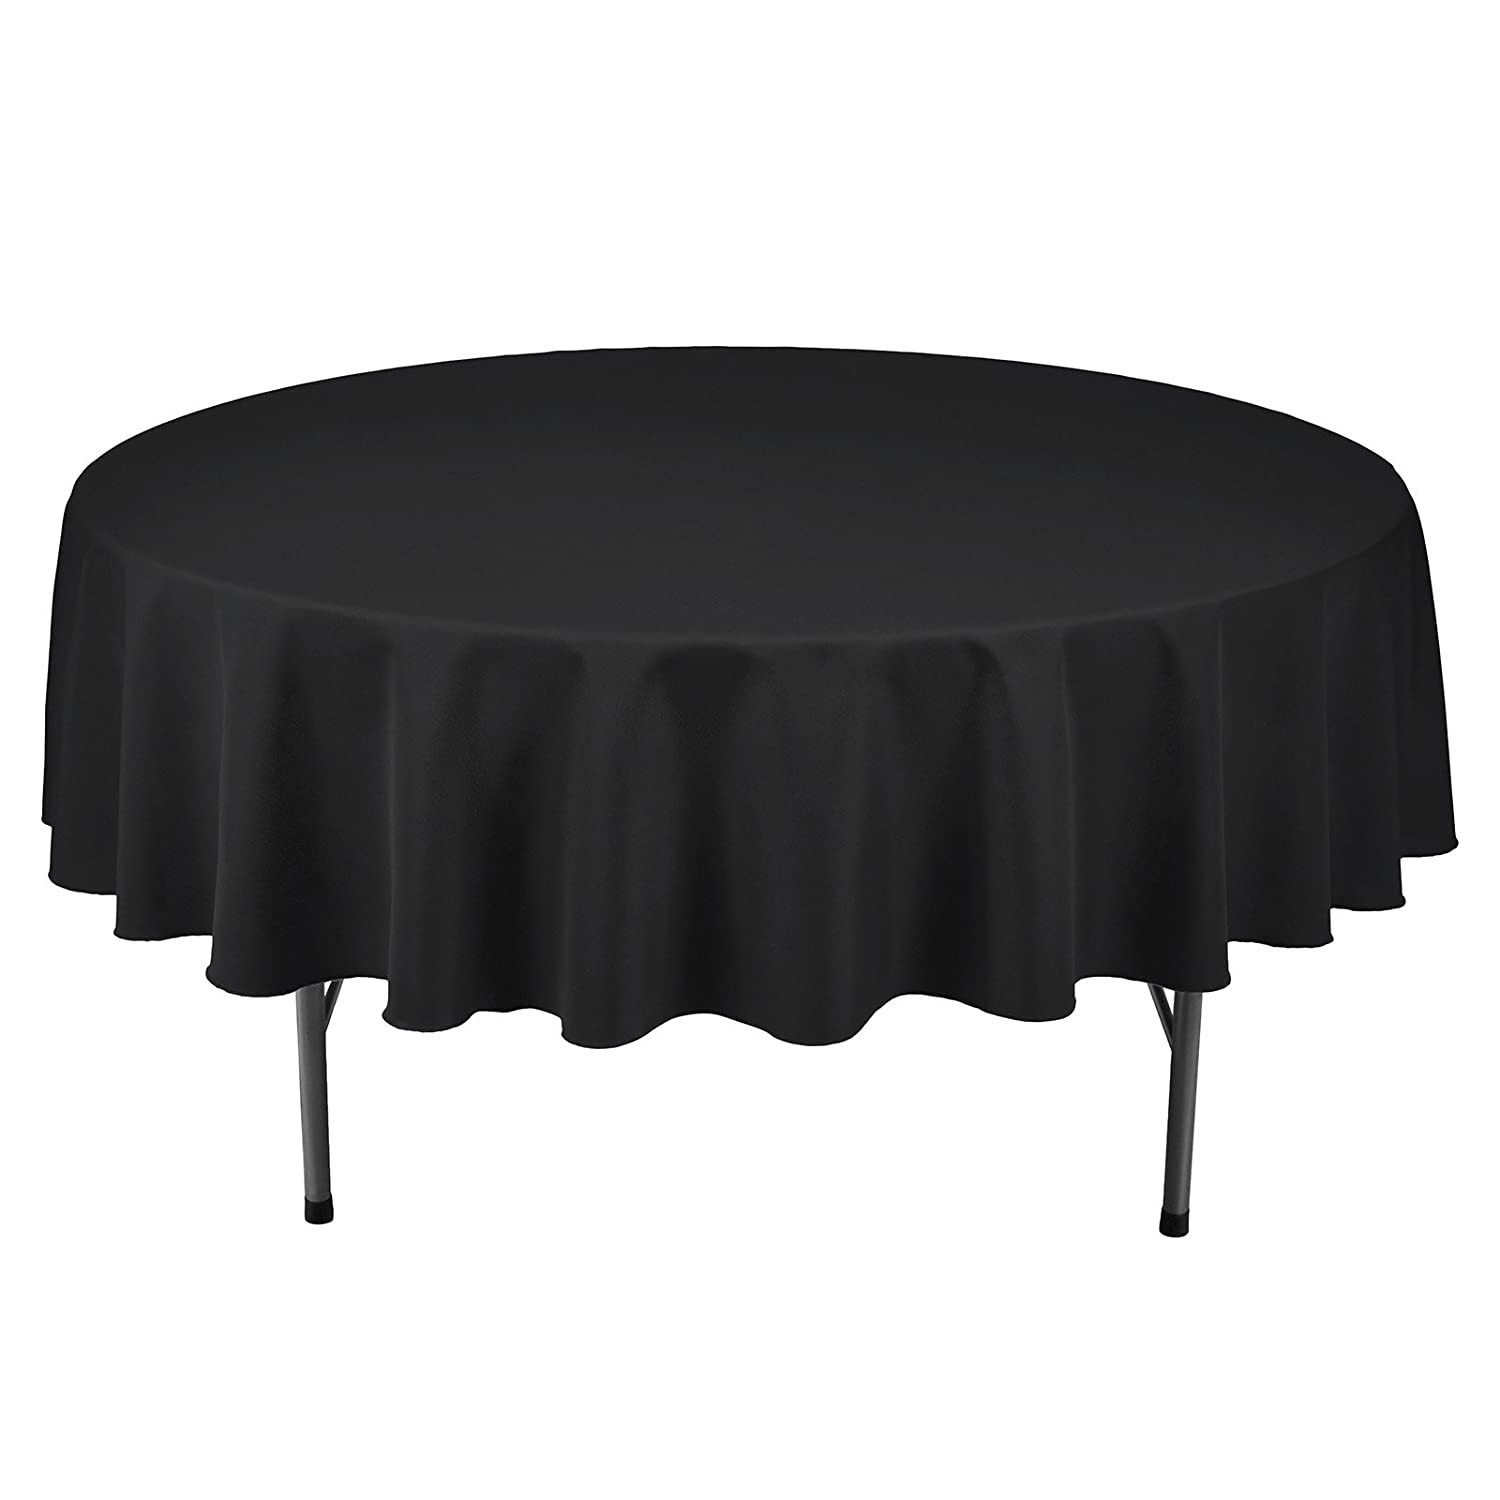 VEEYOO Tablecloth 90 inch Round Solid Polyester Table Cloth for Wedding Restaurant Party Kitchen Dining Table Christmas, Black